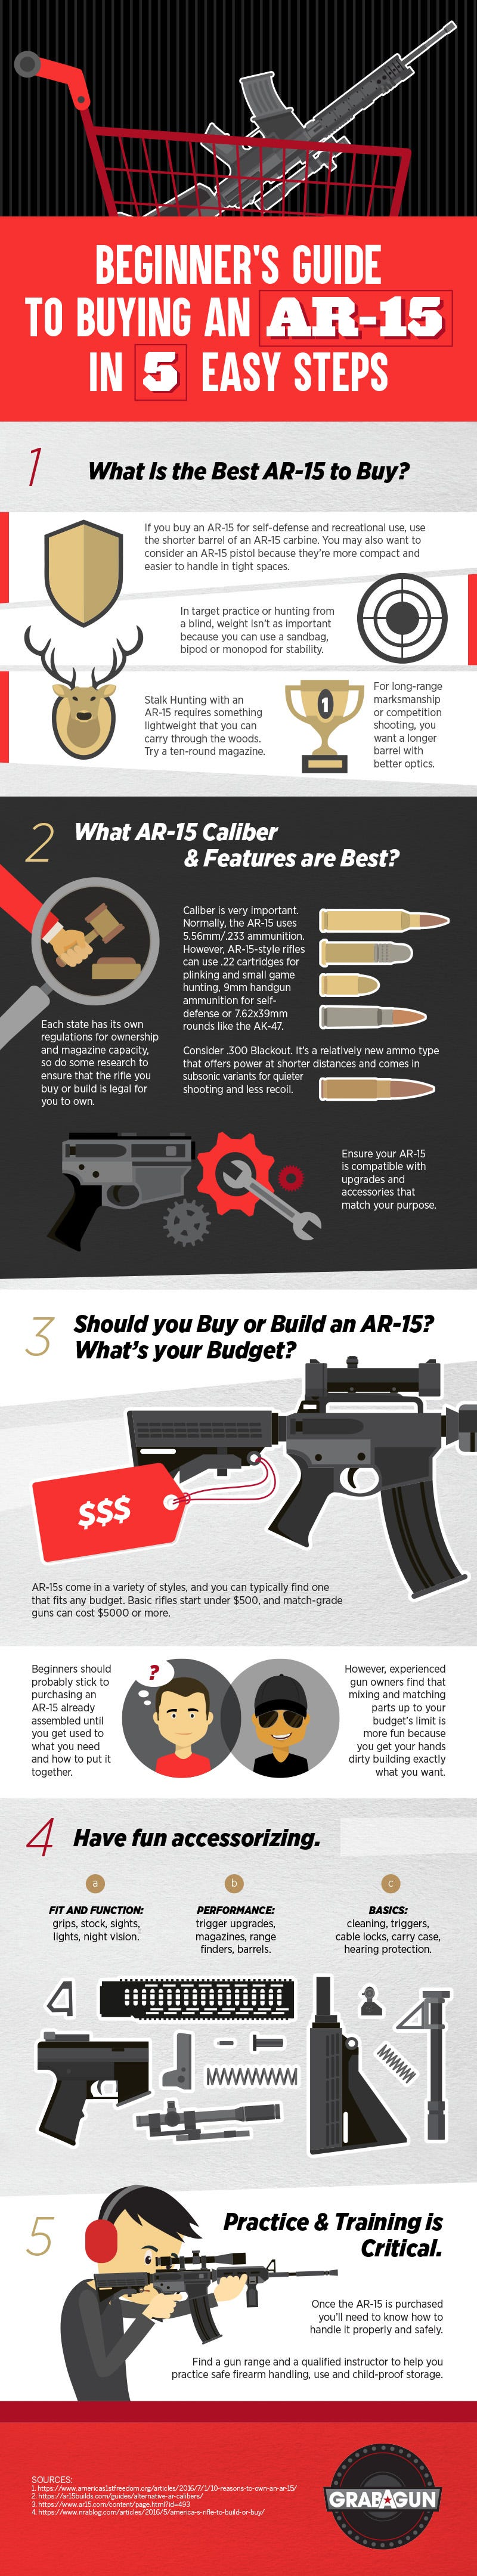 How to Buy an AR Rifle in 5 Easy Steps